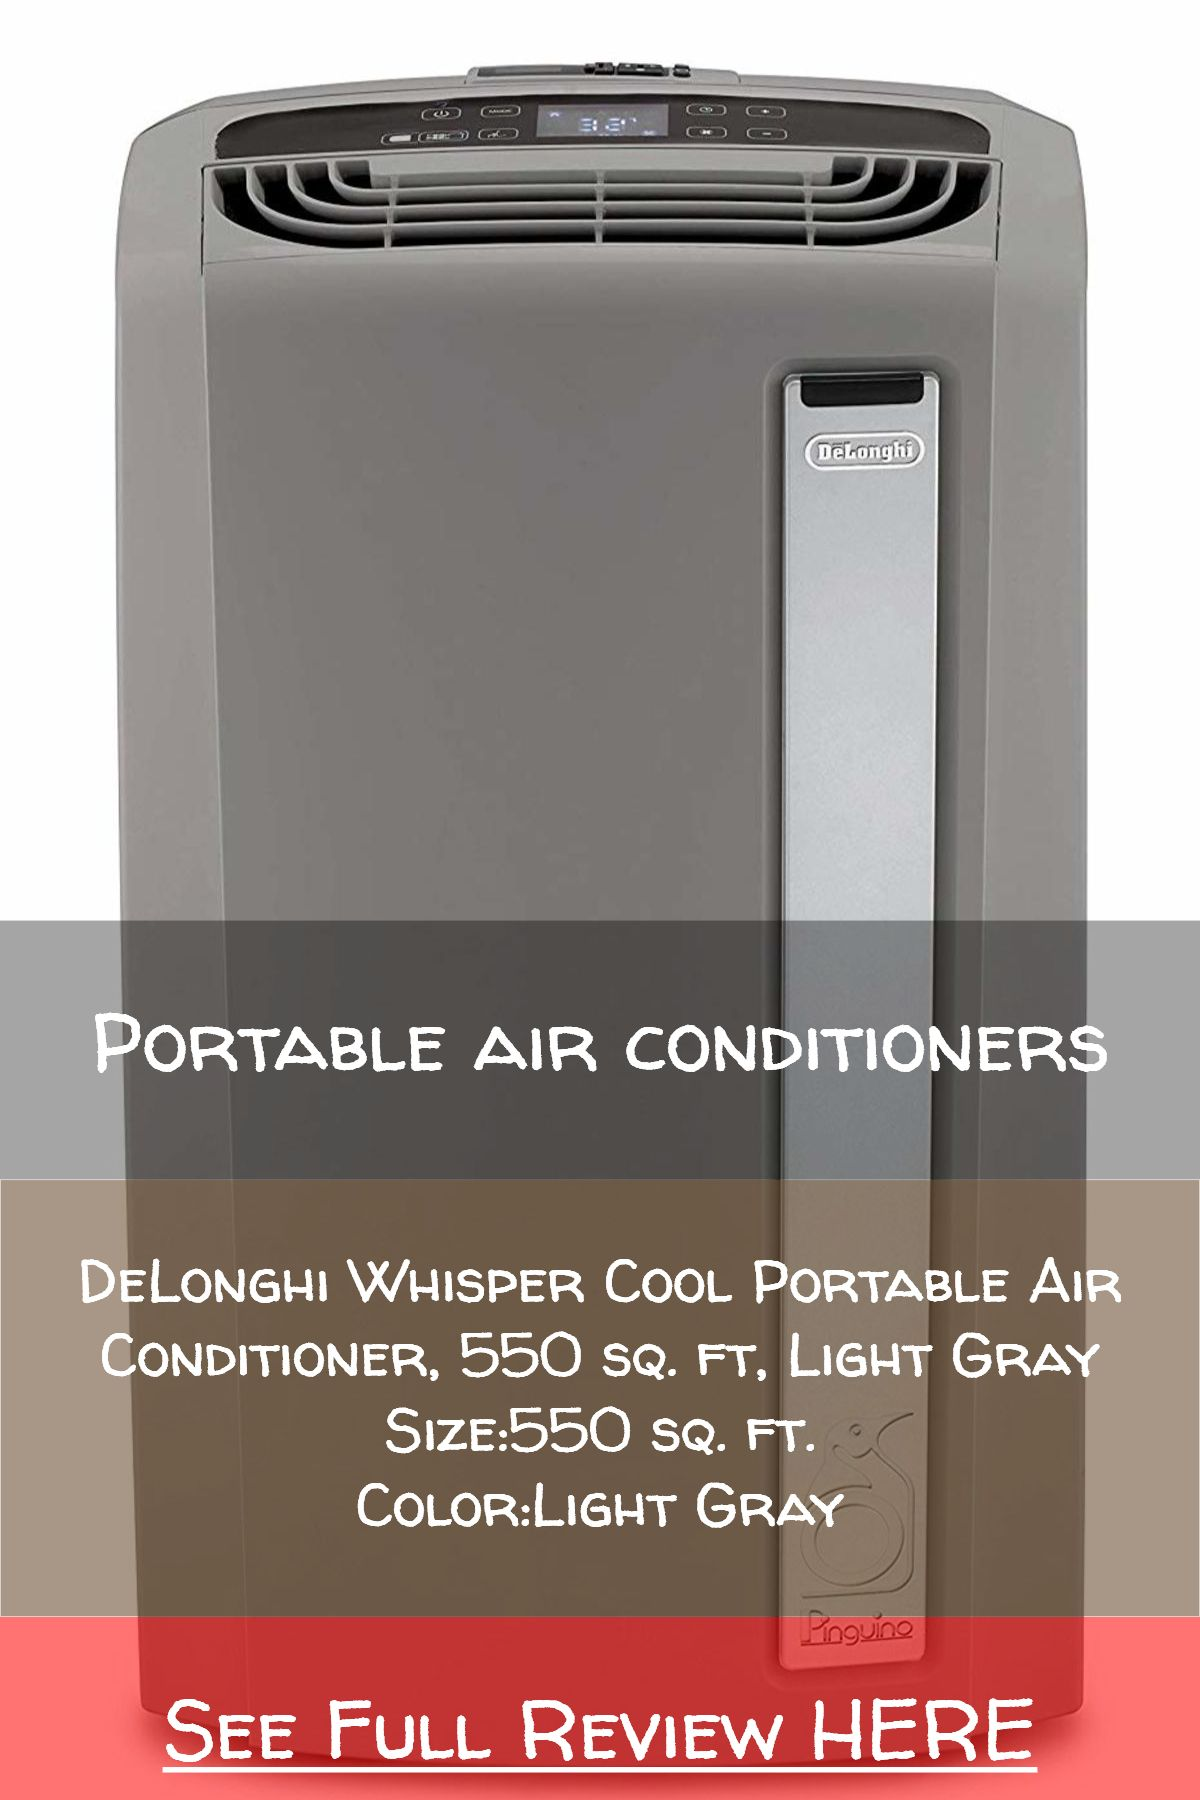 Portable air conditioners / DeLonghi Whisper Cool Portable